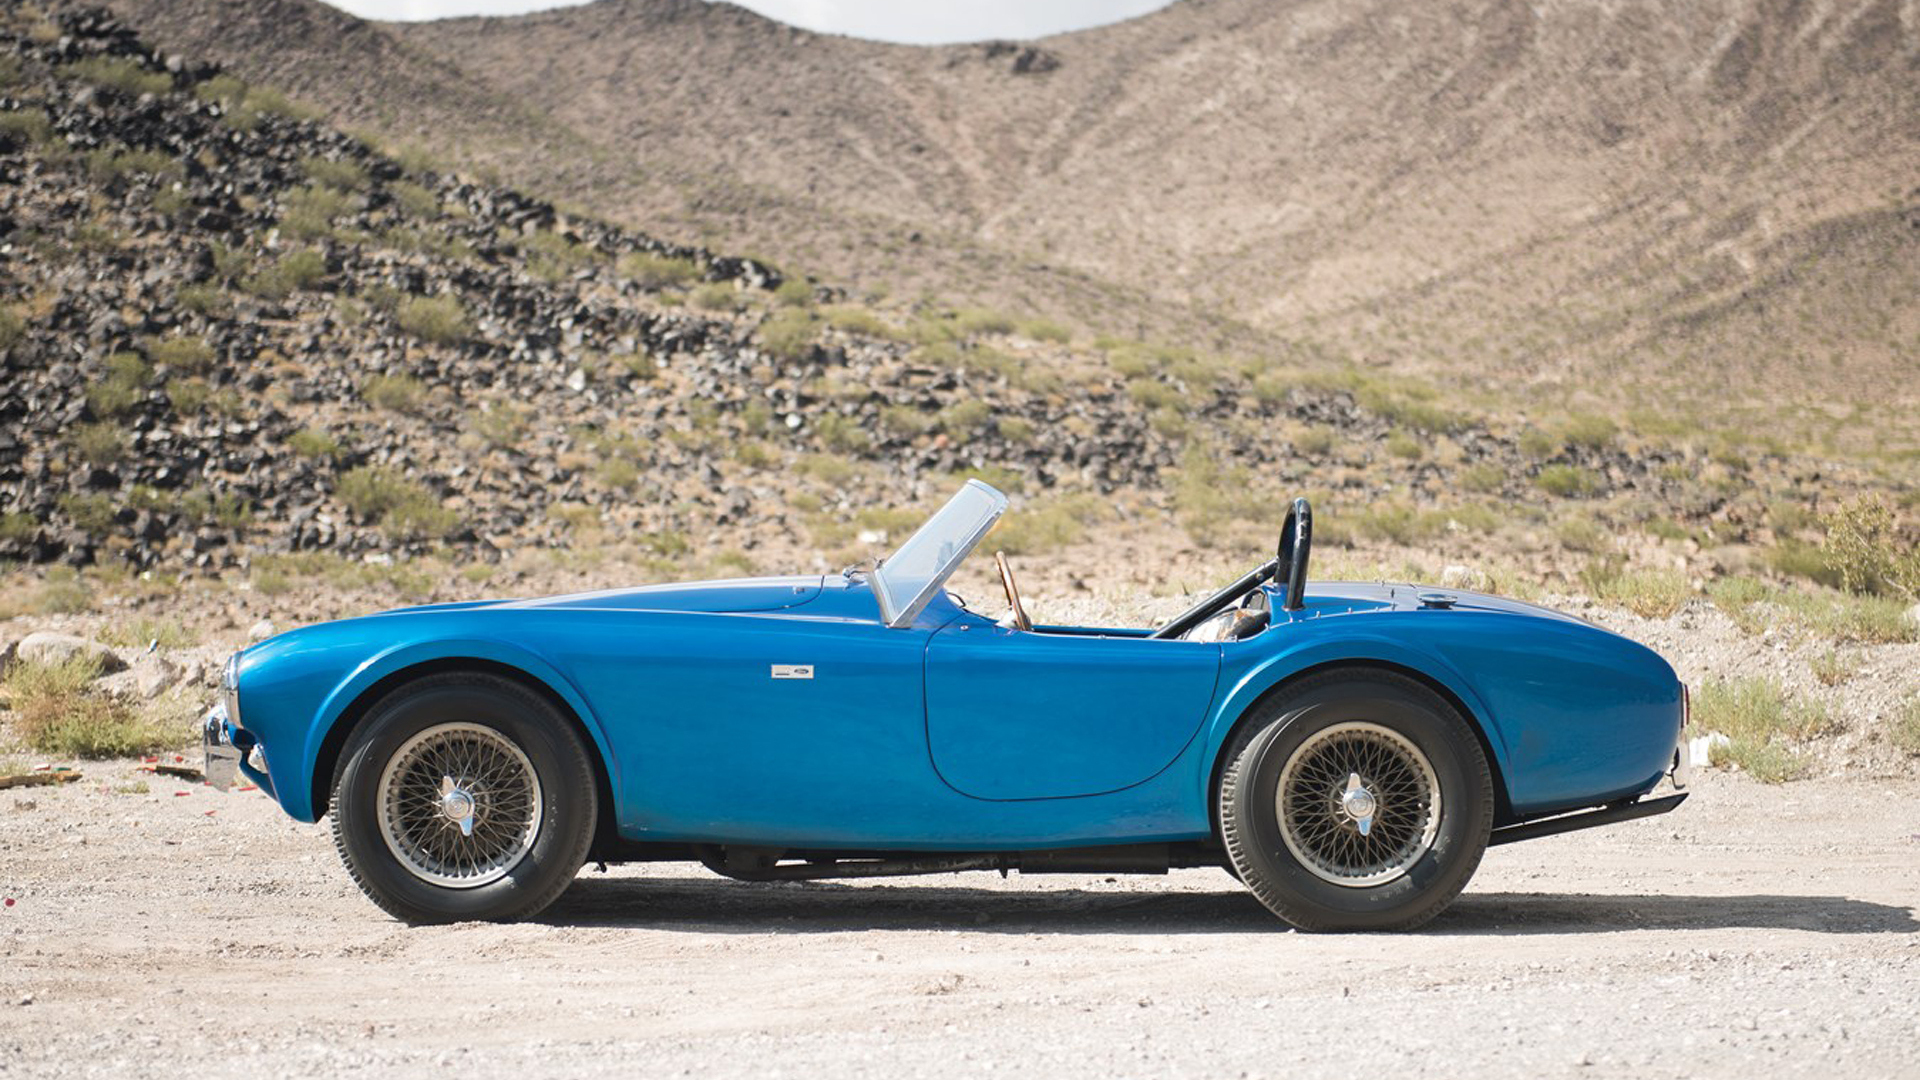 most expensive american car ever sold at auction now is carroll shelby s cobra autoevolution. Black Bedroom Furniture Sets. Home Design Ideas